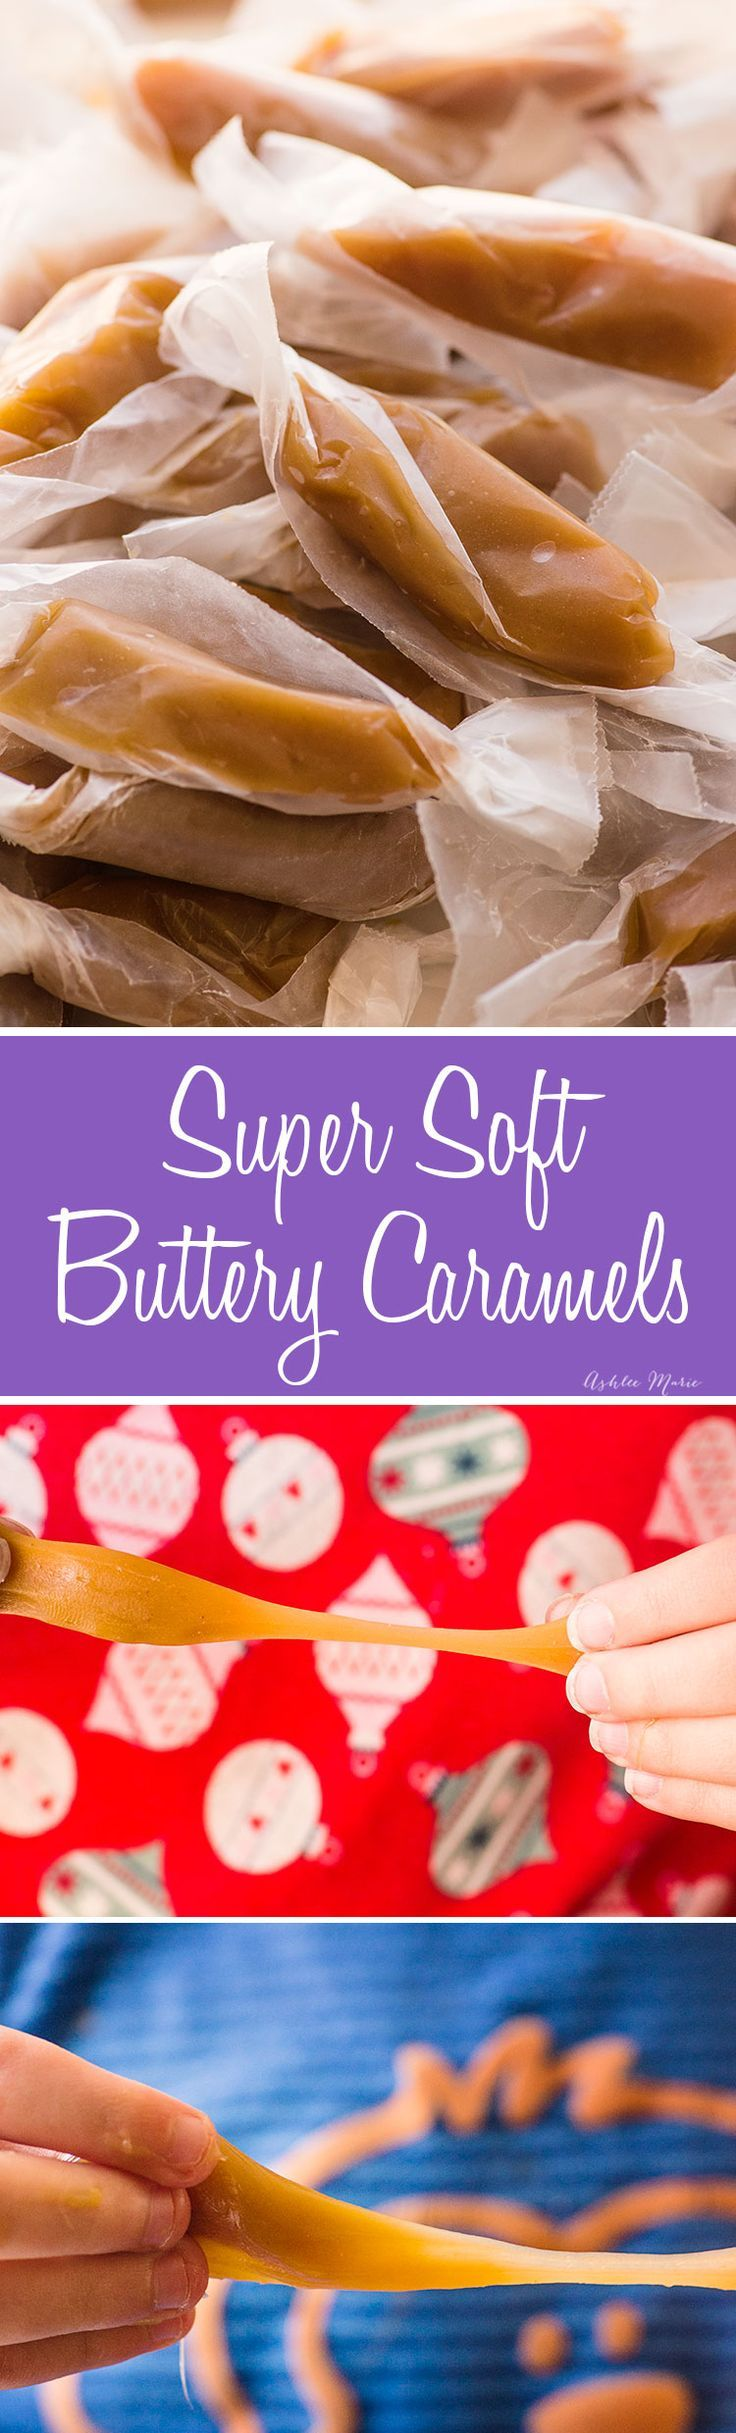 these soft butter caramels are made with brown sugar for a rich flavor and are super simple to make - full video tutorial